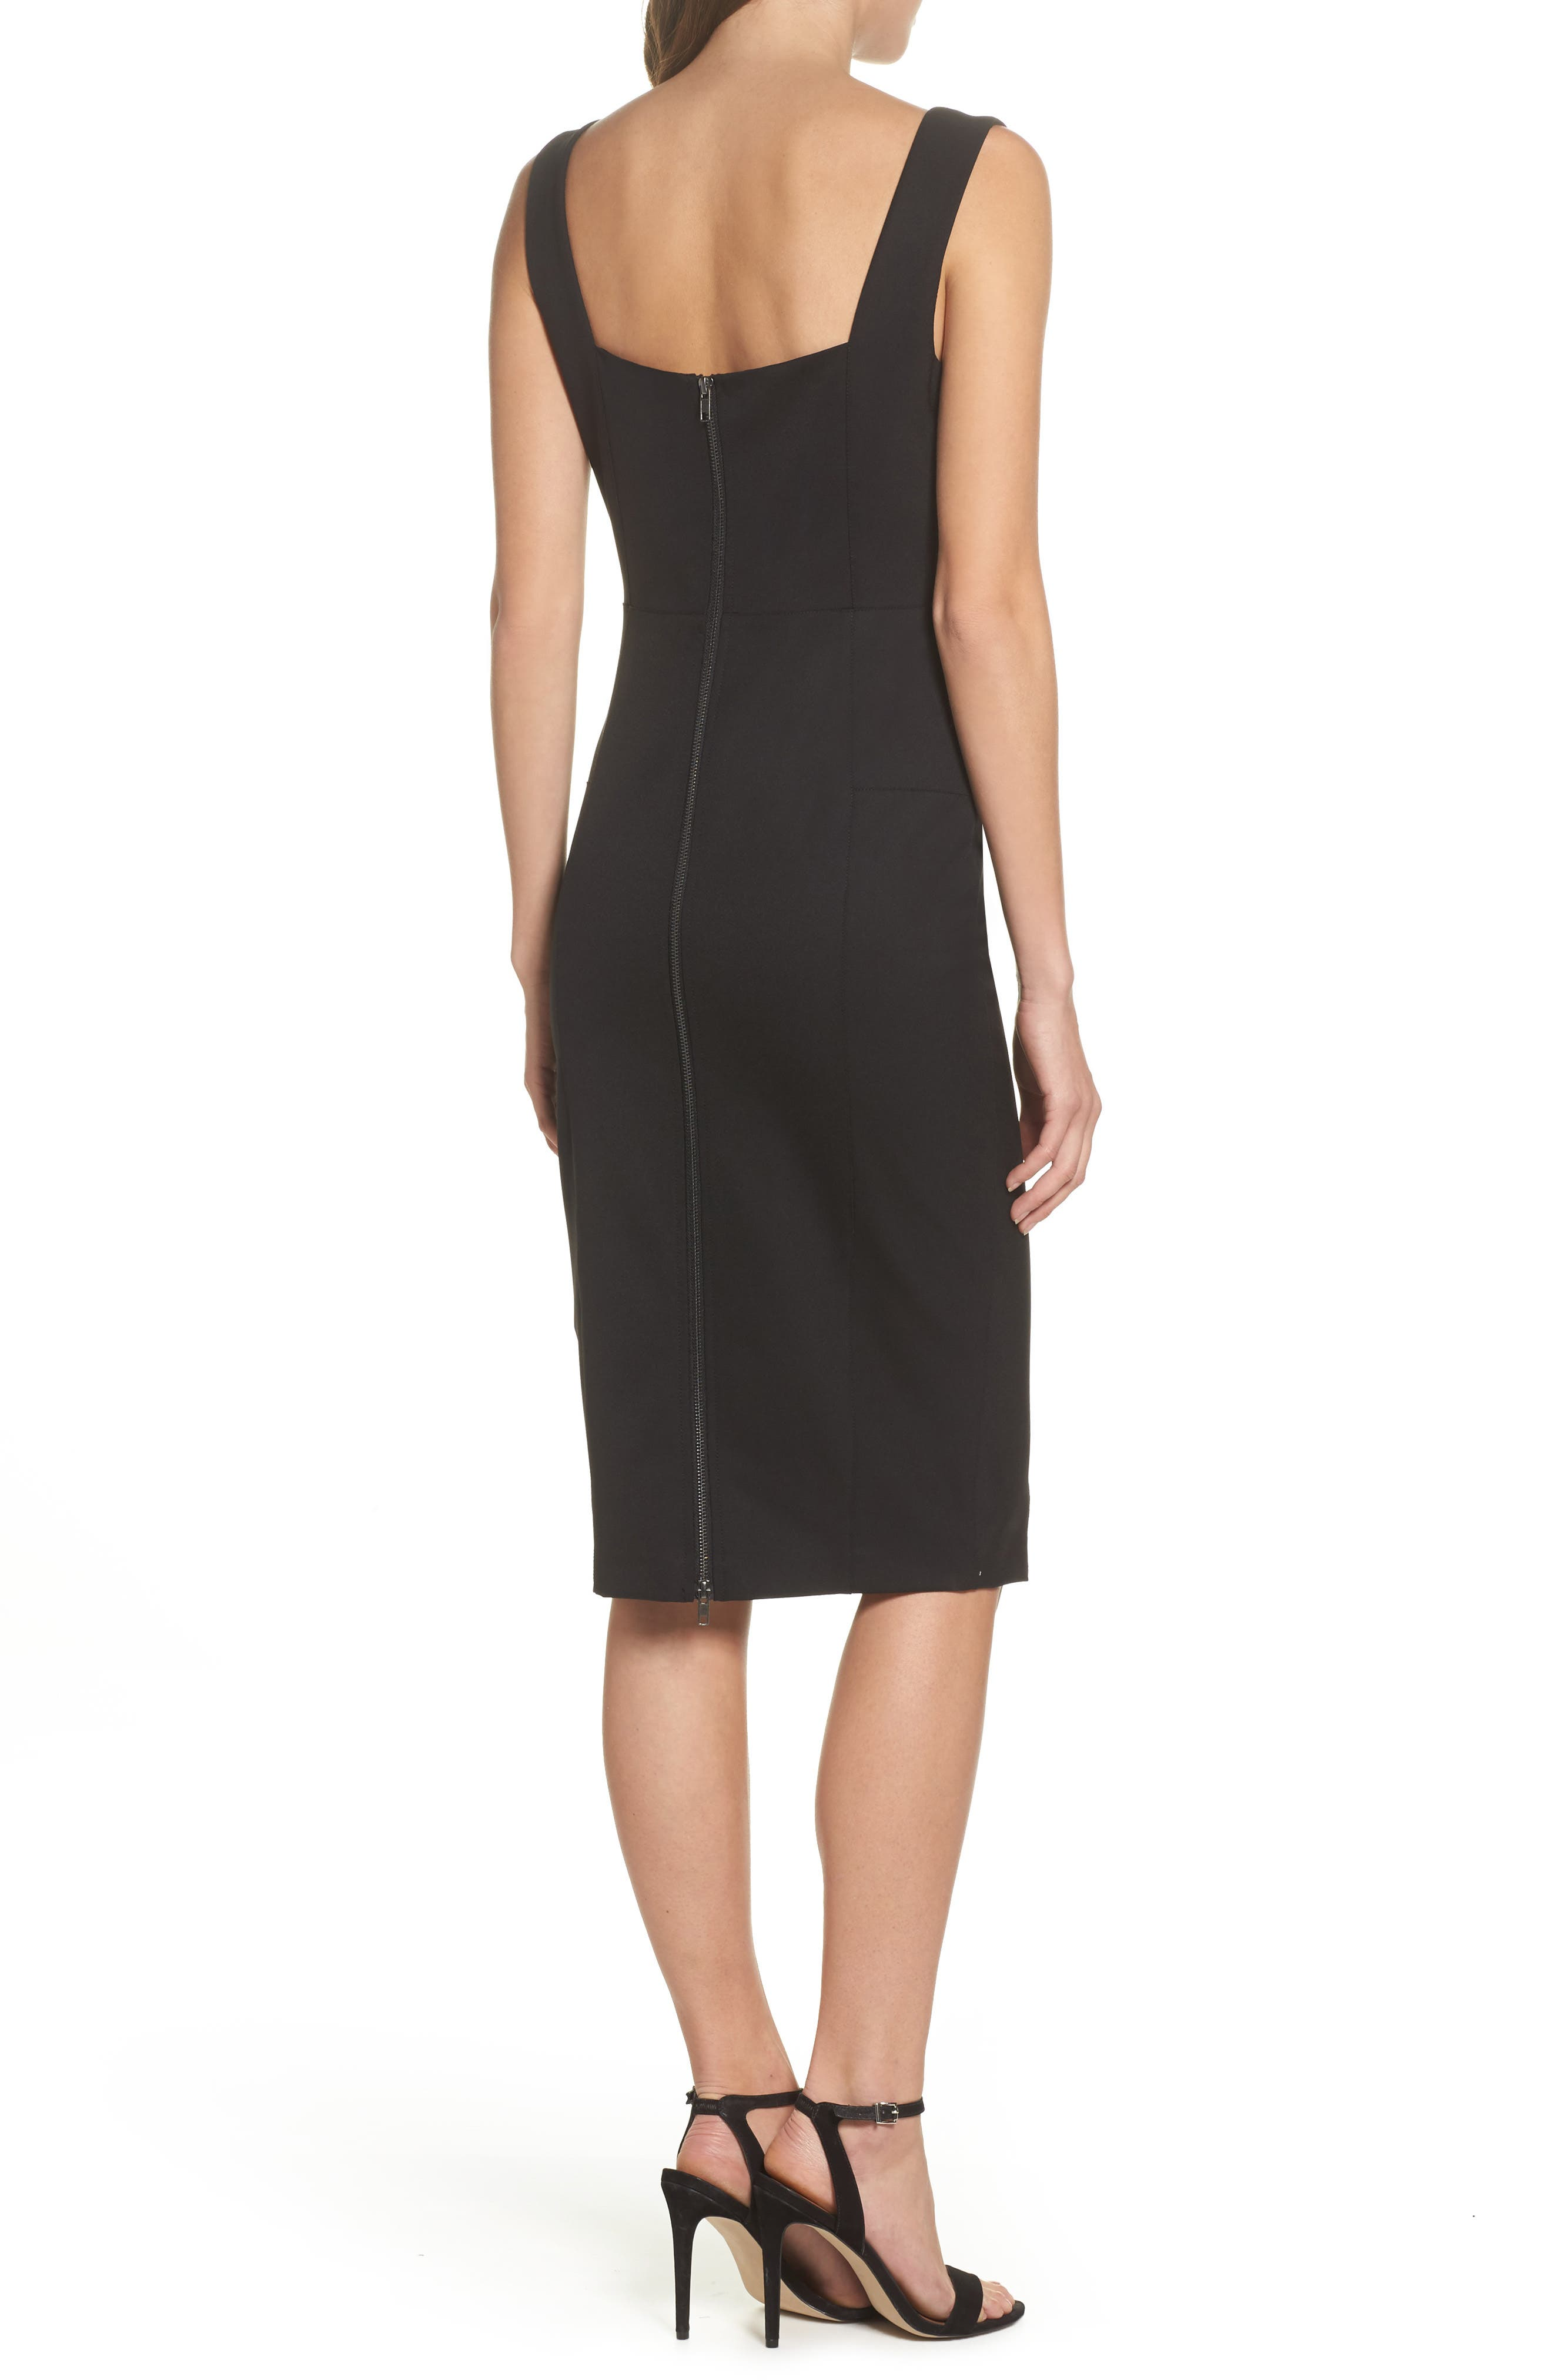 FELICITY & COCO,                             Mirren Midi Body-Con Dress,                             Alternate thumbnail 2, color,                             001